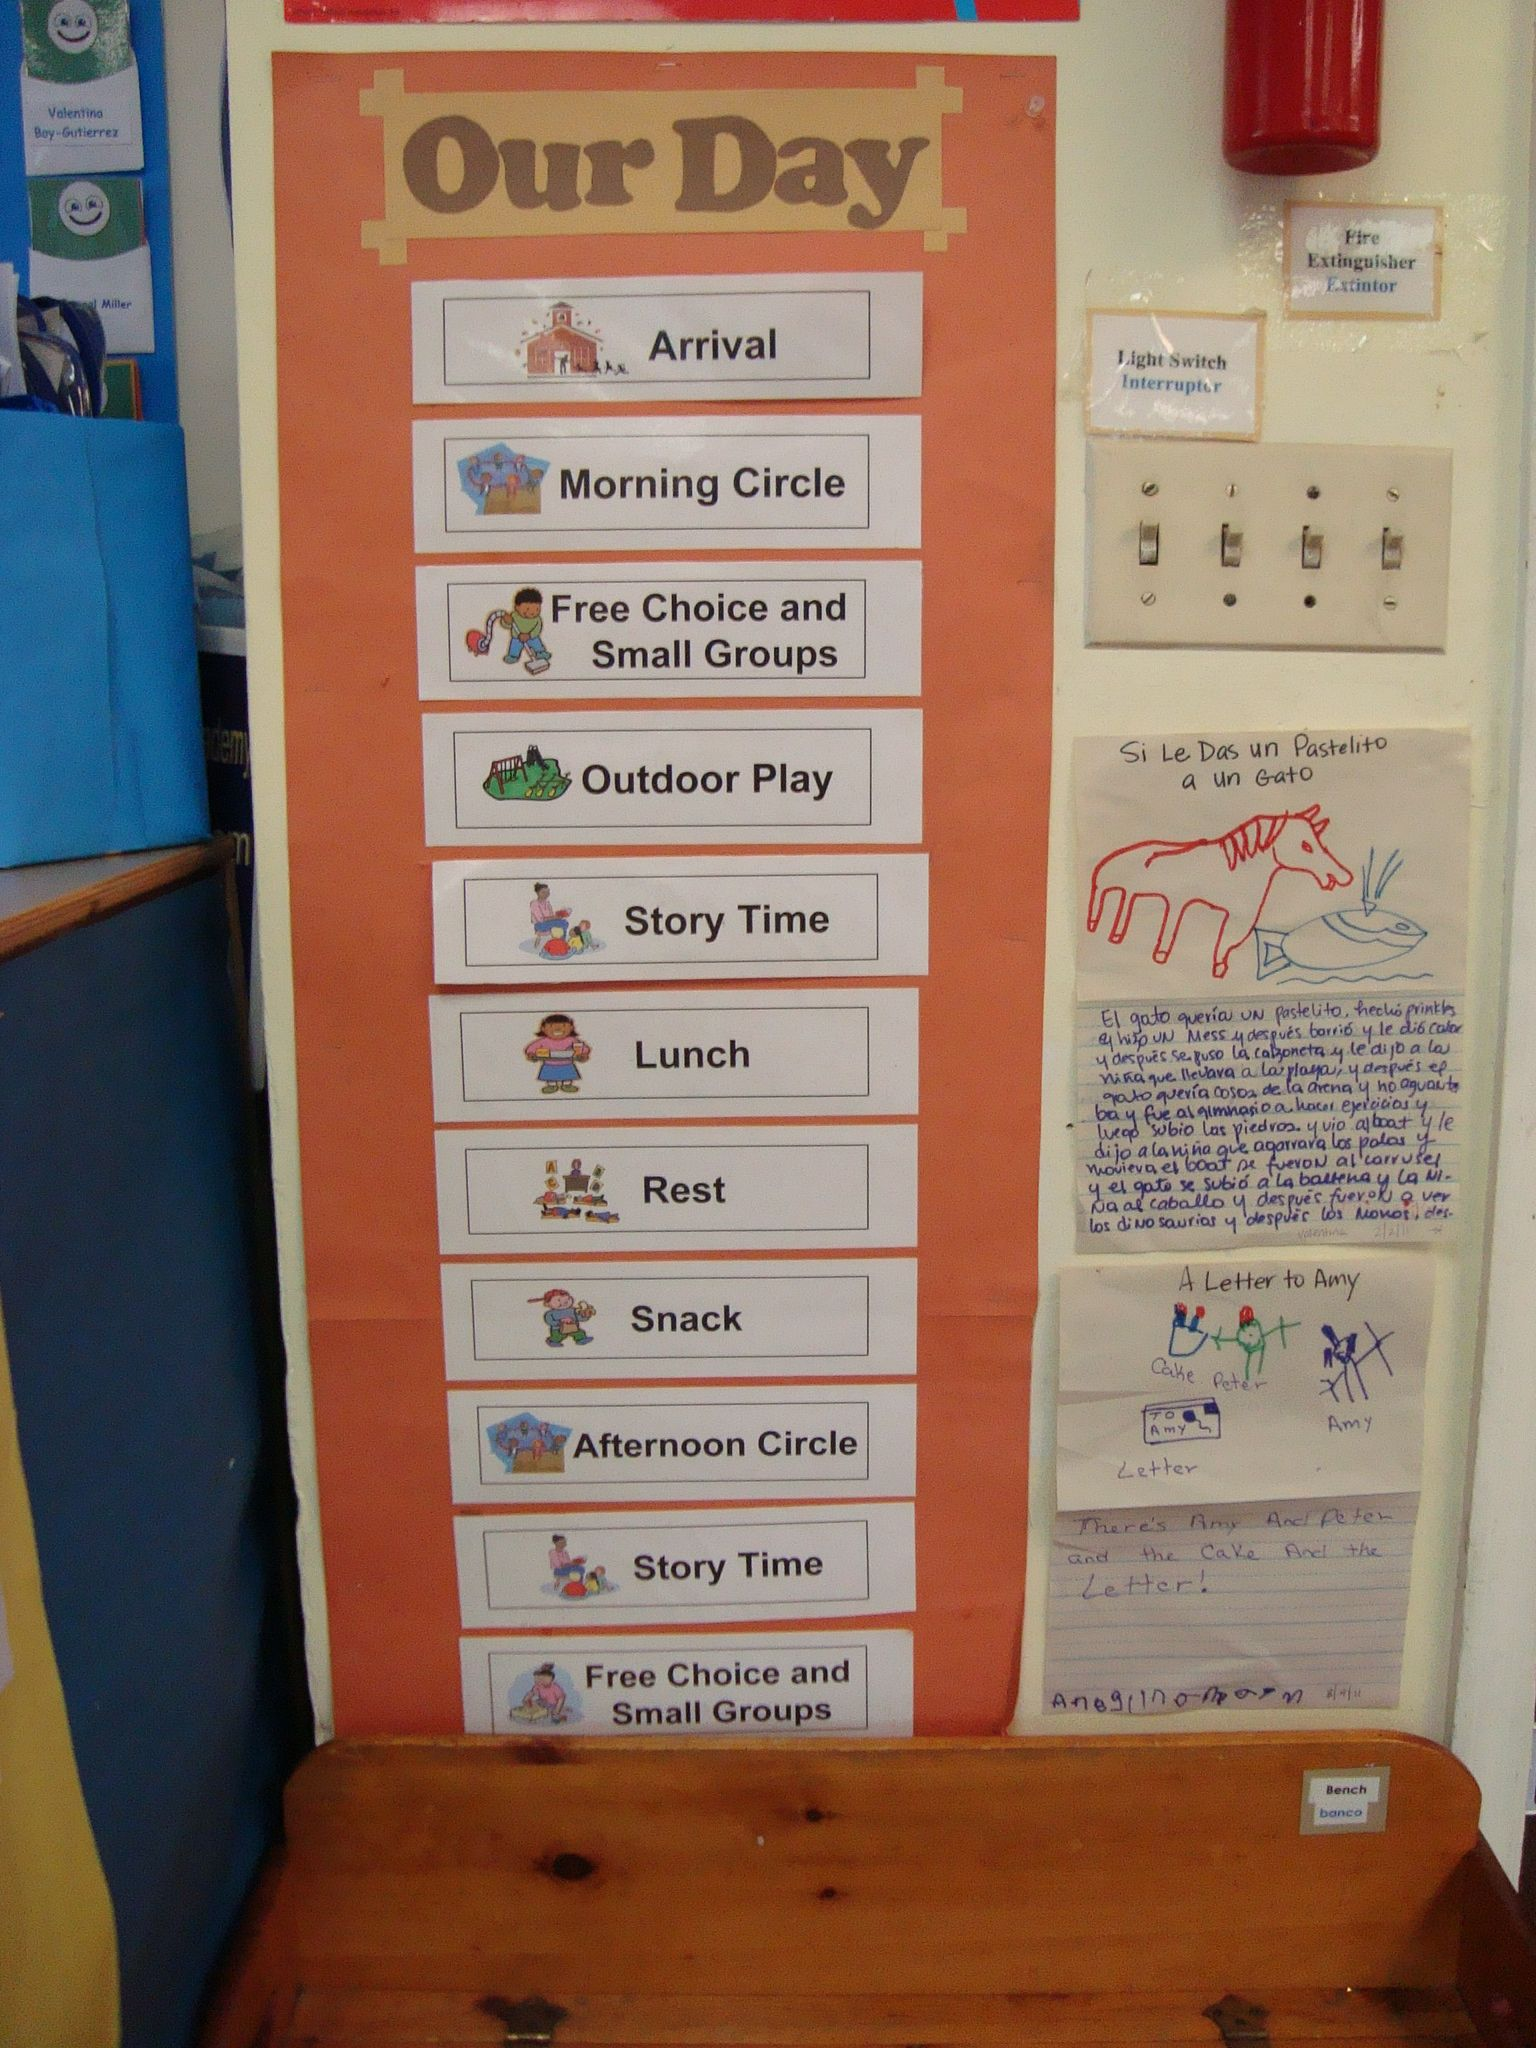 Schedule clipart daycare. Preschool daily classroom